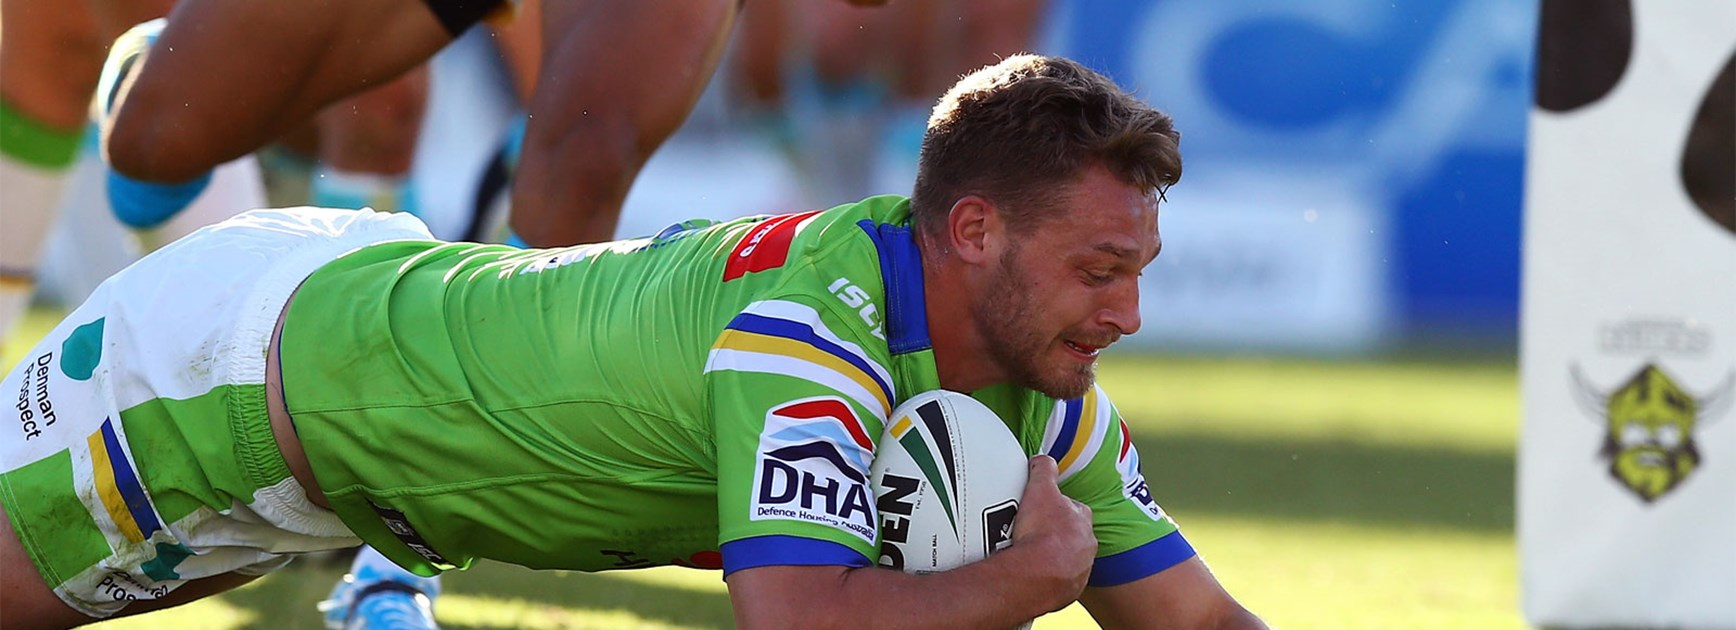 Raiders forward Elliot Whitehead scores for Canberra against the Titans on Saturday.